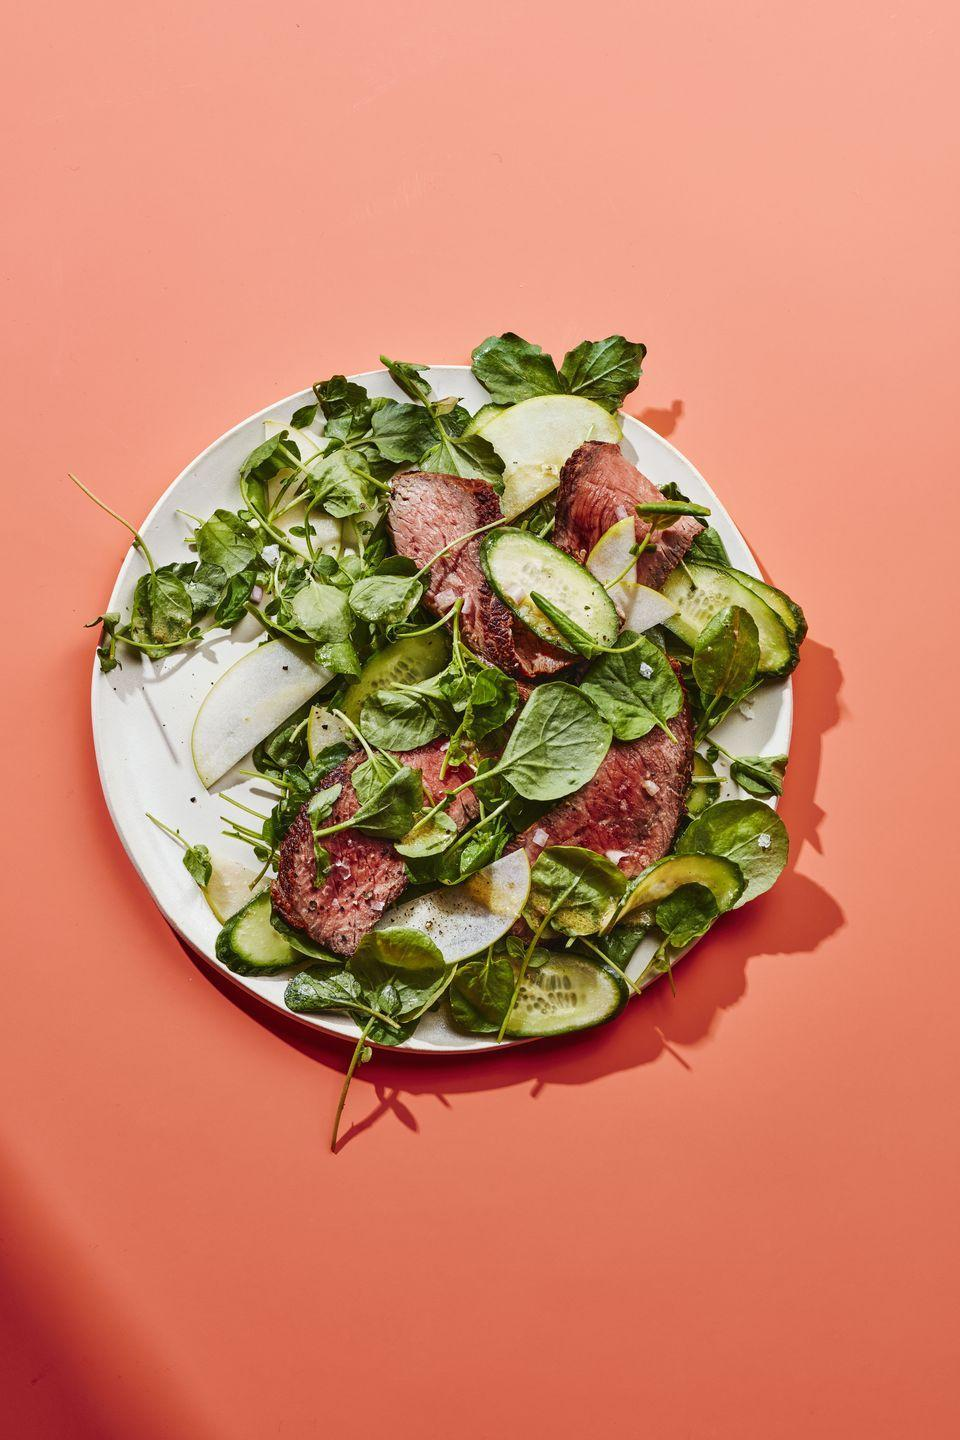 """<p>Give your go-to lettuce a rest and toss in a few different kinds of greens instead. Add mixed herbs (entire leaves or chopped), microgreens, and sprouts, or shredded cabbage or Brussels sprouts. A few <a href=""""https://www.womansday.com/food-recipes/food-drinks/g2523/summer-salads/"""" rel=""""nofollow noopener"""" target=""""_blank"""" data-ylk=""""slk:salad options"""" class=""""link rapid-noclick-resp"""">salad options</a> when it comes to thinking beyond kale and romaine:<strong><br><br>•Mustard greens</strong> have a peppery taste and are packed with vitamin K, which helps with blood clotting, plus calcium and iron.<br><br><strong>•Watercress leaves</strong> are delicate, but they're a rich source of antioxidants like vitamin C and lutein, as well as vitamin A, crucial to good eye health.<br><br><strong>•Arugula</strong> is great for gut health—it contains sulforaphane, which may ease constipation, and also folate, a B vitamin that helps the body digest carbs.<br><br>Finally, try topping with crispy chickpeas instead of croutons for crunch; something sweet, like pears, apples, or grapes; or a dressing that spices things up—we're looking at you, horseradish.<br></p><p><strong>Start by trying the recipes for <a href=""""https://www.womenshealthmag.com/food/a33863942/steak-apple-watercress-salad-recipe/"""" rel=""""nofollow noopener"""" target=""""_blank"""" data-ylk=""""slk:Watercress Steak Salad with Horseradish Vinaigrette"""" class=""""link rapid-noclick-resp"""">Watercress Steak Salad with Horseradish Vinaigrette</a> and <a href=""""https://www.womenshealthmag.com/food/a29135611/impossible-bratwurst-apple-salad-with-caraway-vinaigrette/"""" rel=""""nofollow noopener"""" target=""""_blank"""" data-ylk=""""slk:Vegan Bratwurst Salad with Caraway Vinaigrette"""" class=""""link rapid-noclick-resp"""">Vegan Bratwurst Salad with Caraway Vinaigrette</a>. </strong> </p>"""